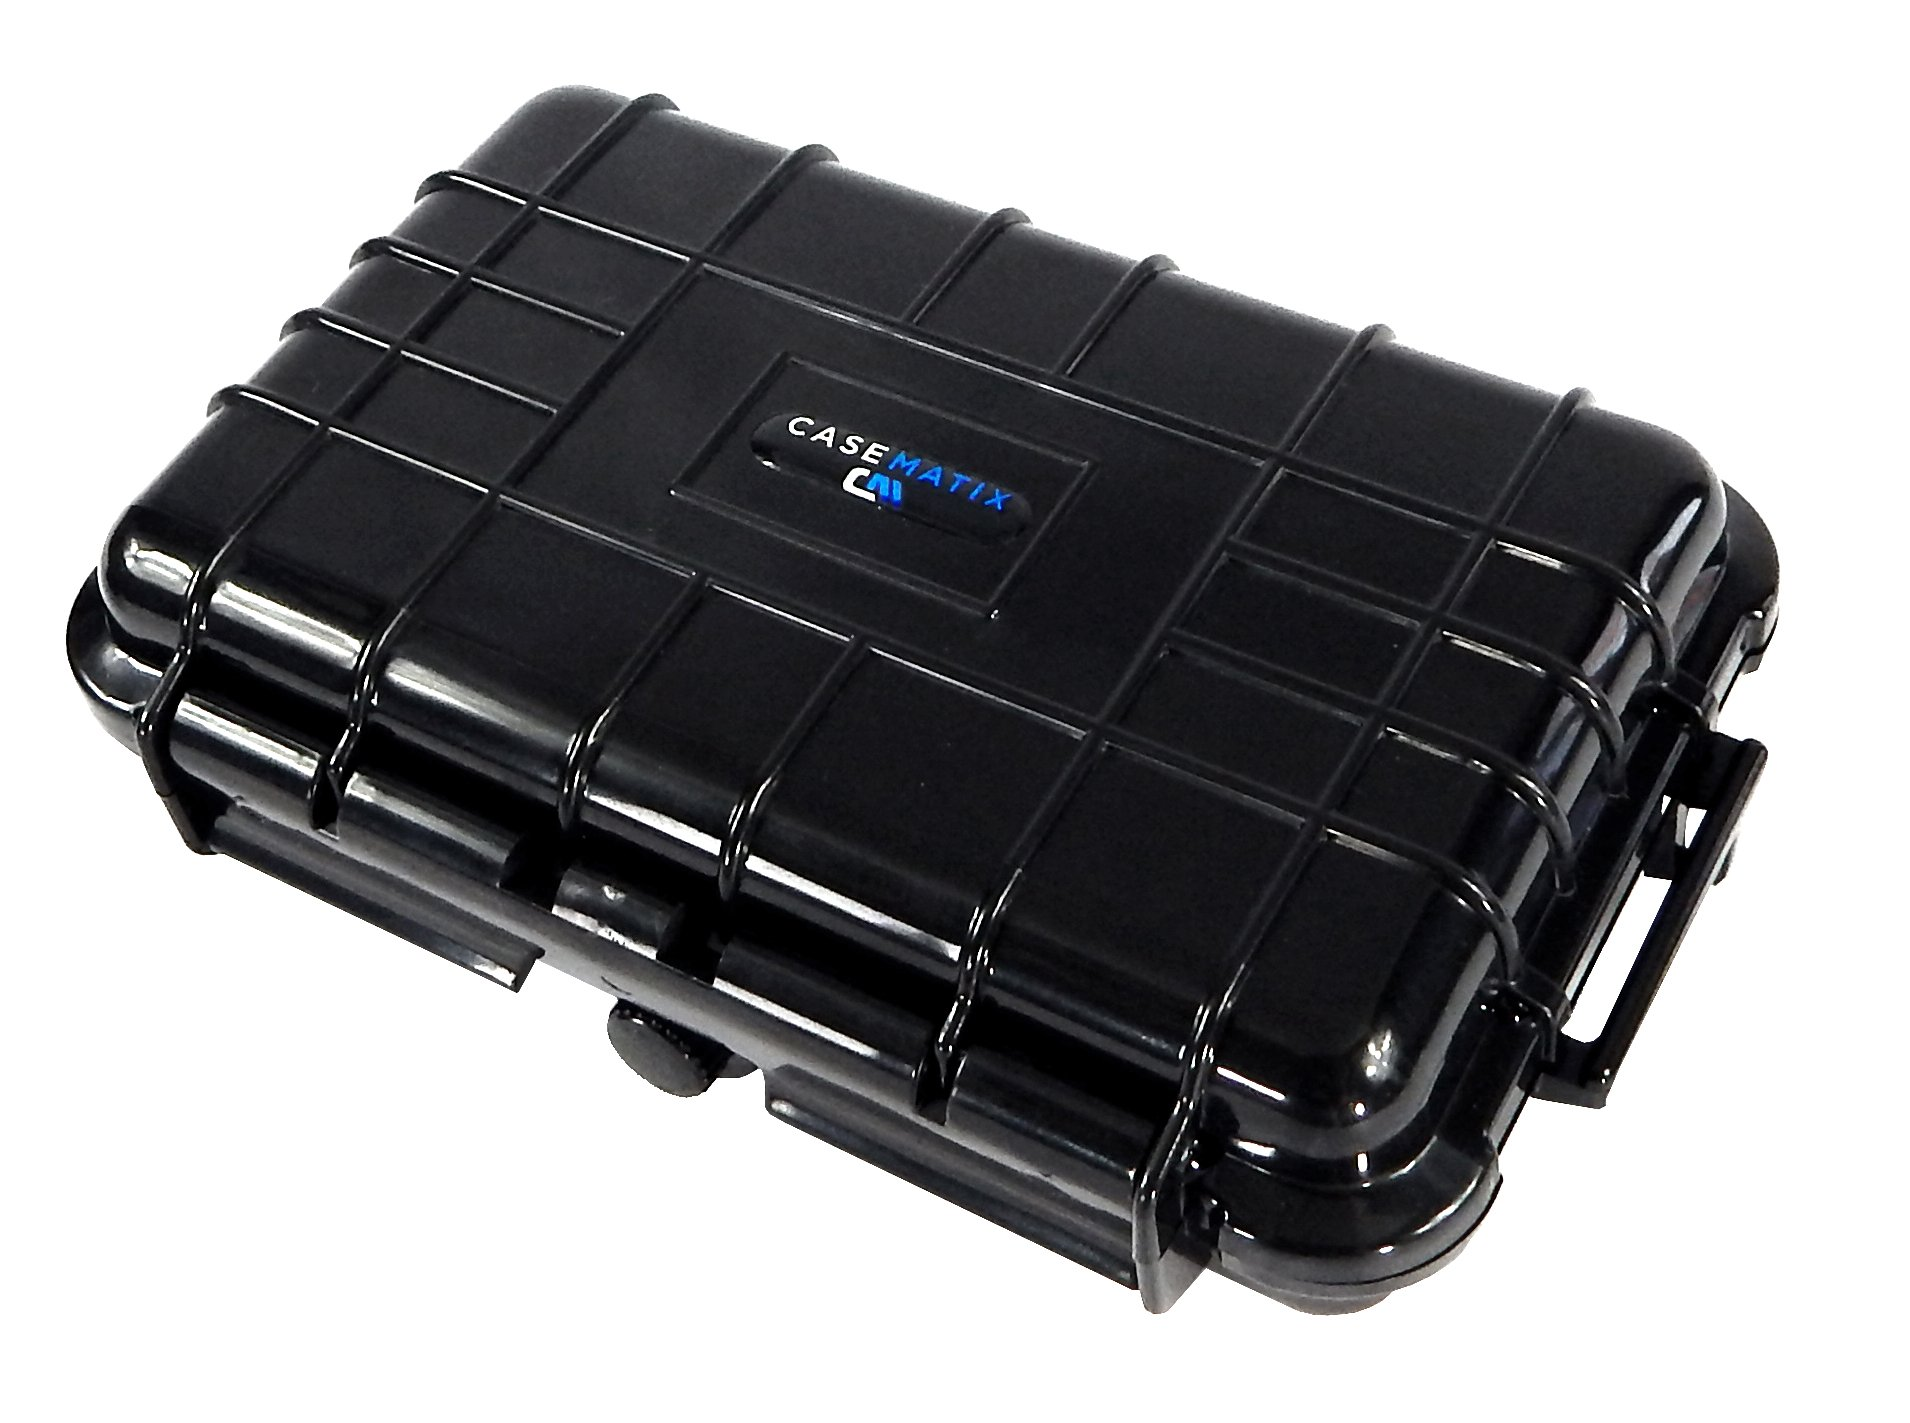 CASEMATIX Waterproof Portable Photo Printer Case Fits Lifeprint Photo AND Video Printer and Charge Cable